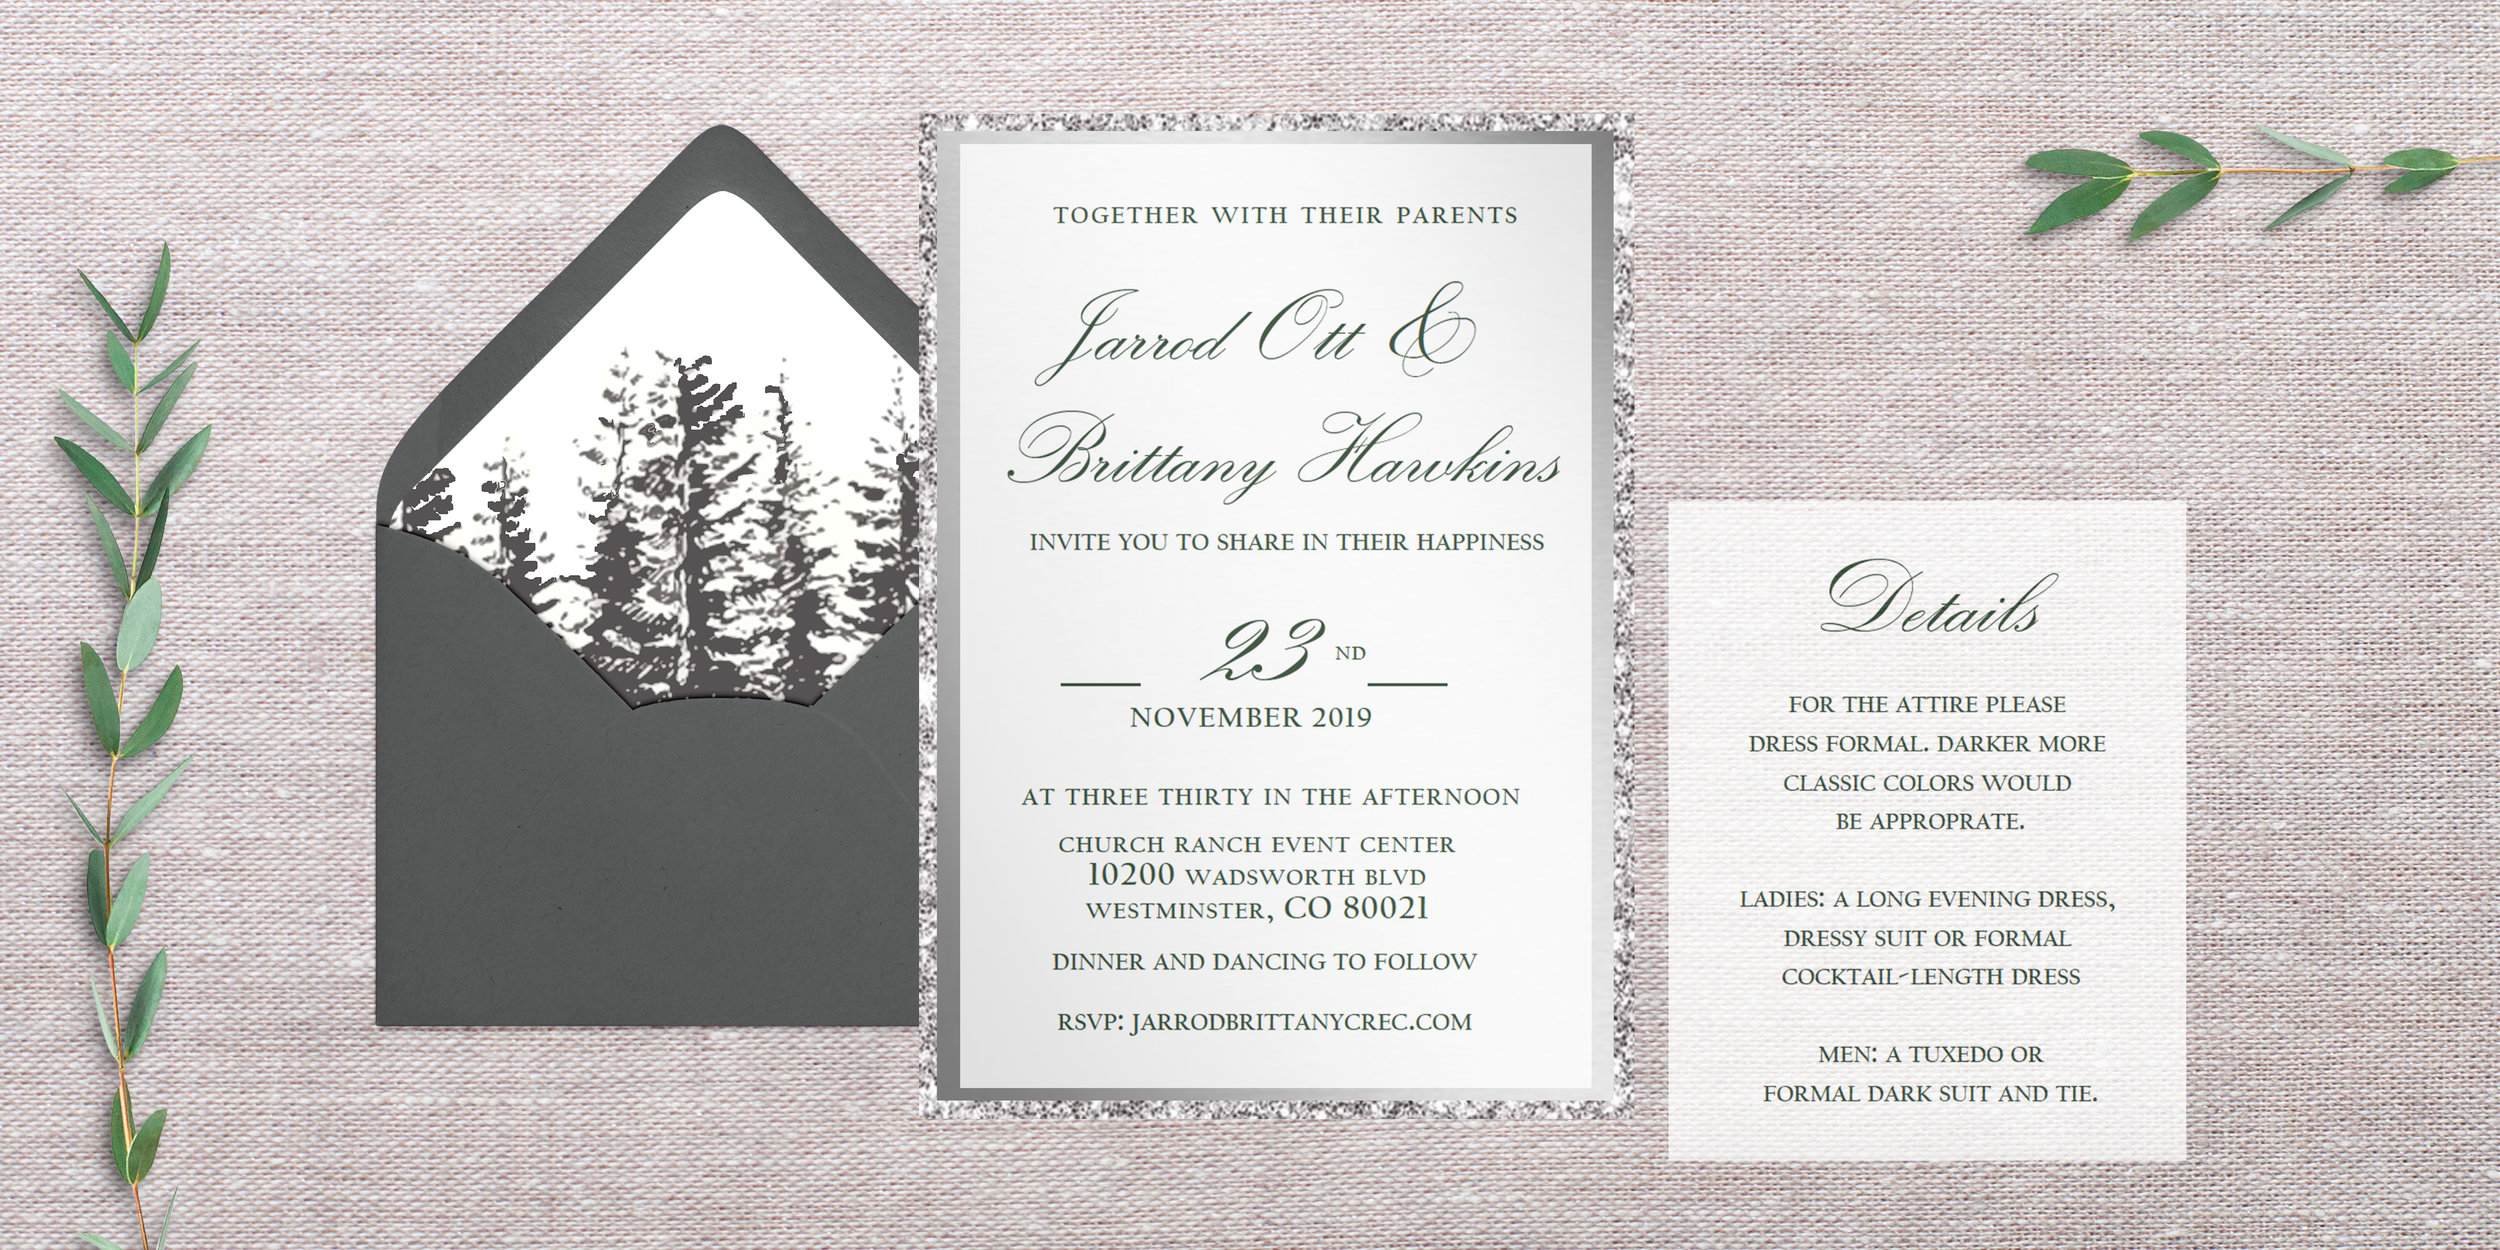 This suite has an RSVP website link, at the bottom of the invitation so that your guests can respond digitally!  The RSVP card, has been eliminated and instead replaced with a details card- which will provide your guests with more information   What's needed:  1. What's the correct url/website for RSVPing 2. What exactly would you want the details card to say? Accommodations? Attire? 3. Return Address/Shipping Address  (Submit wording through the form below)   Envelope Colors:  dark grey  Upgrade:  silver + mirror backing, with brads  Quantity:  180  Paper Color:  vellum Paper Texture: vellum  Envelope Liner:  Pine Trees